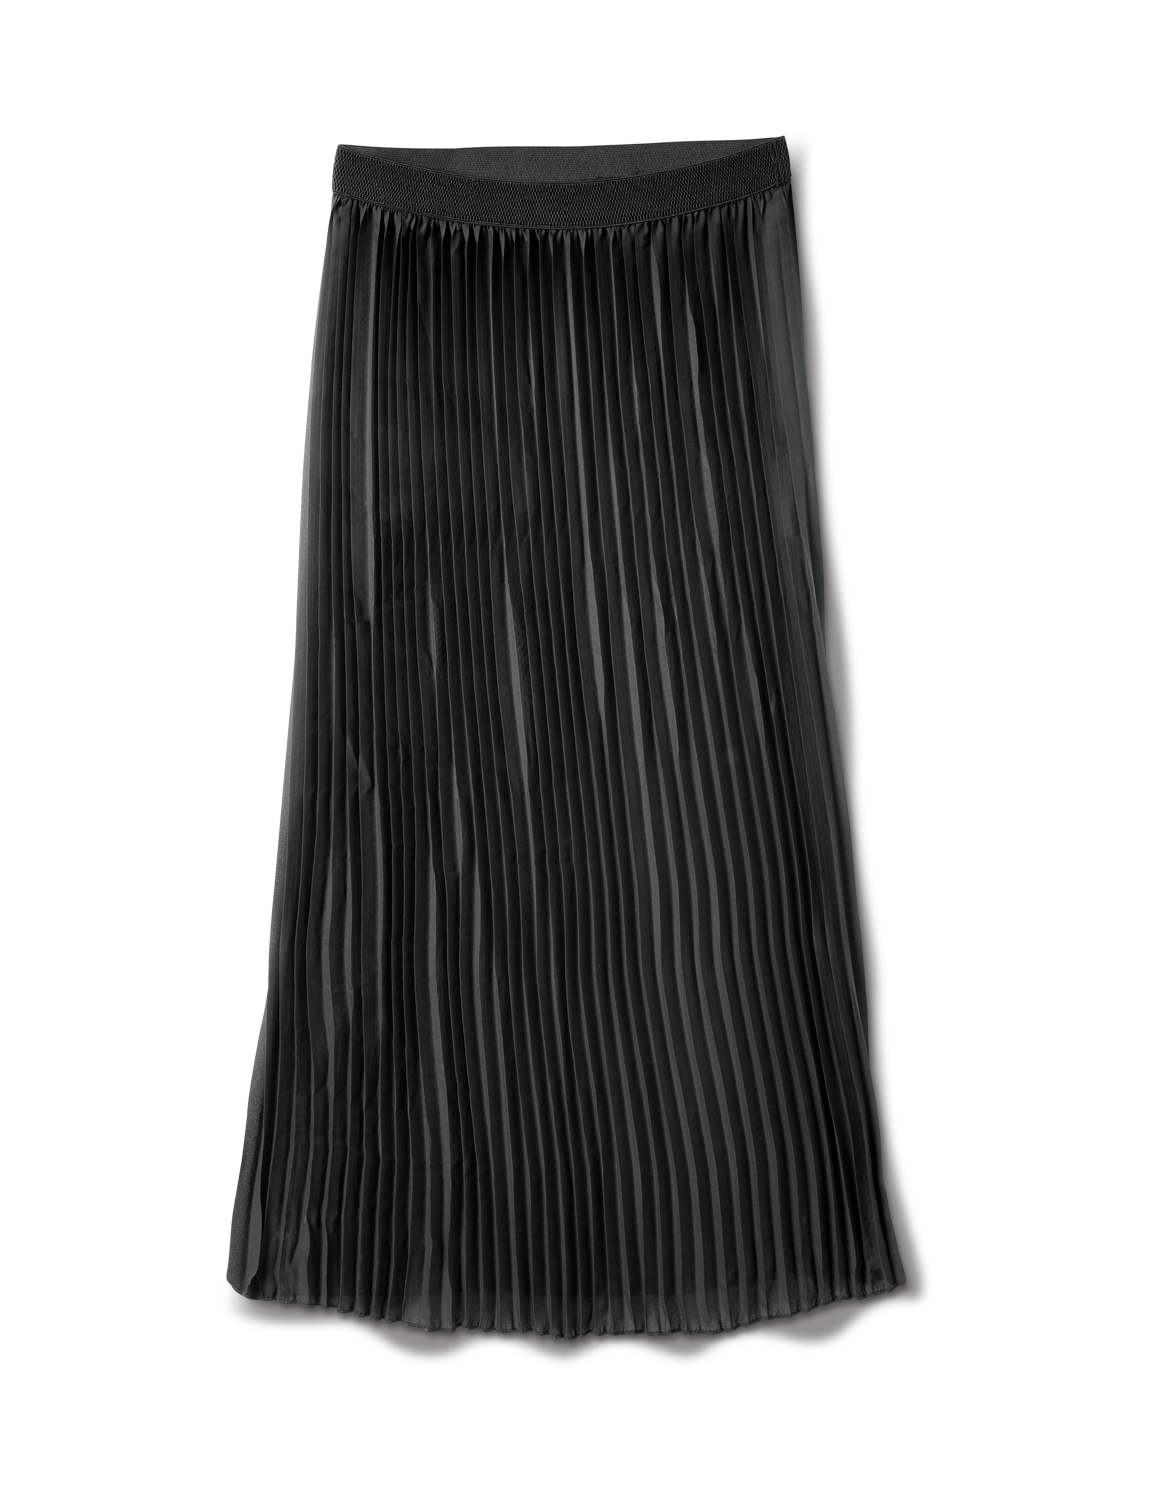 Solid Pleated Skirt With Contrast Elastic Waistband -Black - Front